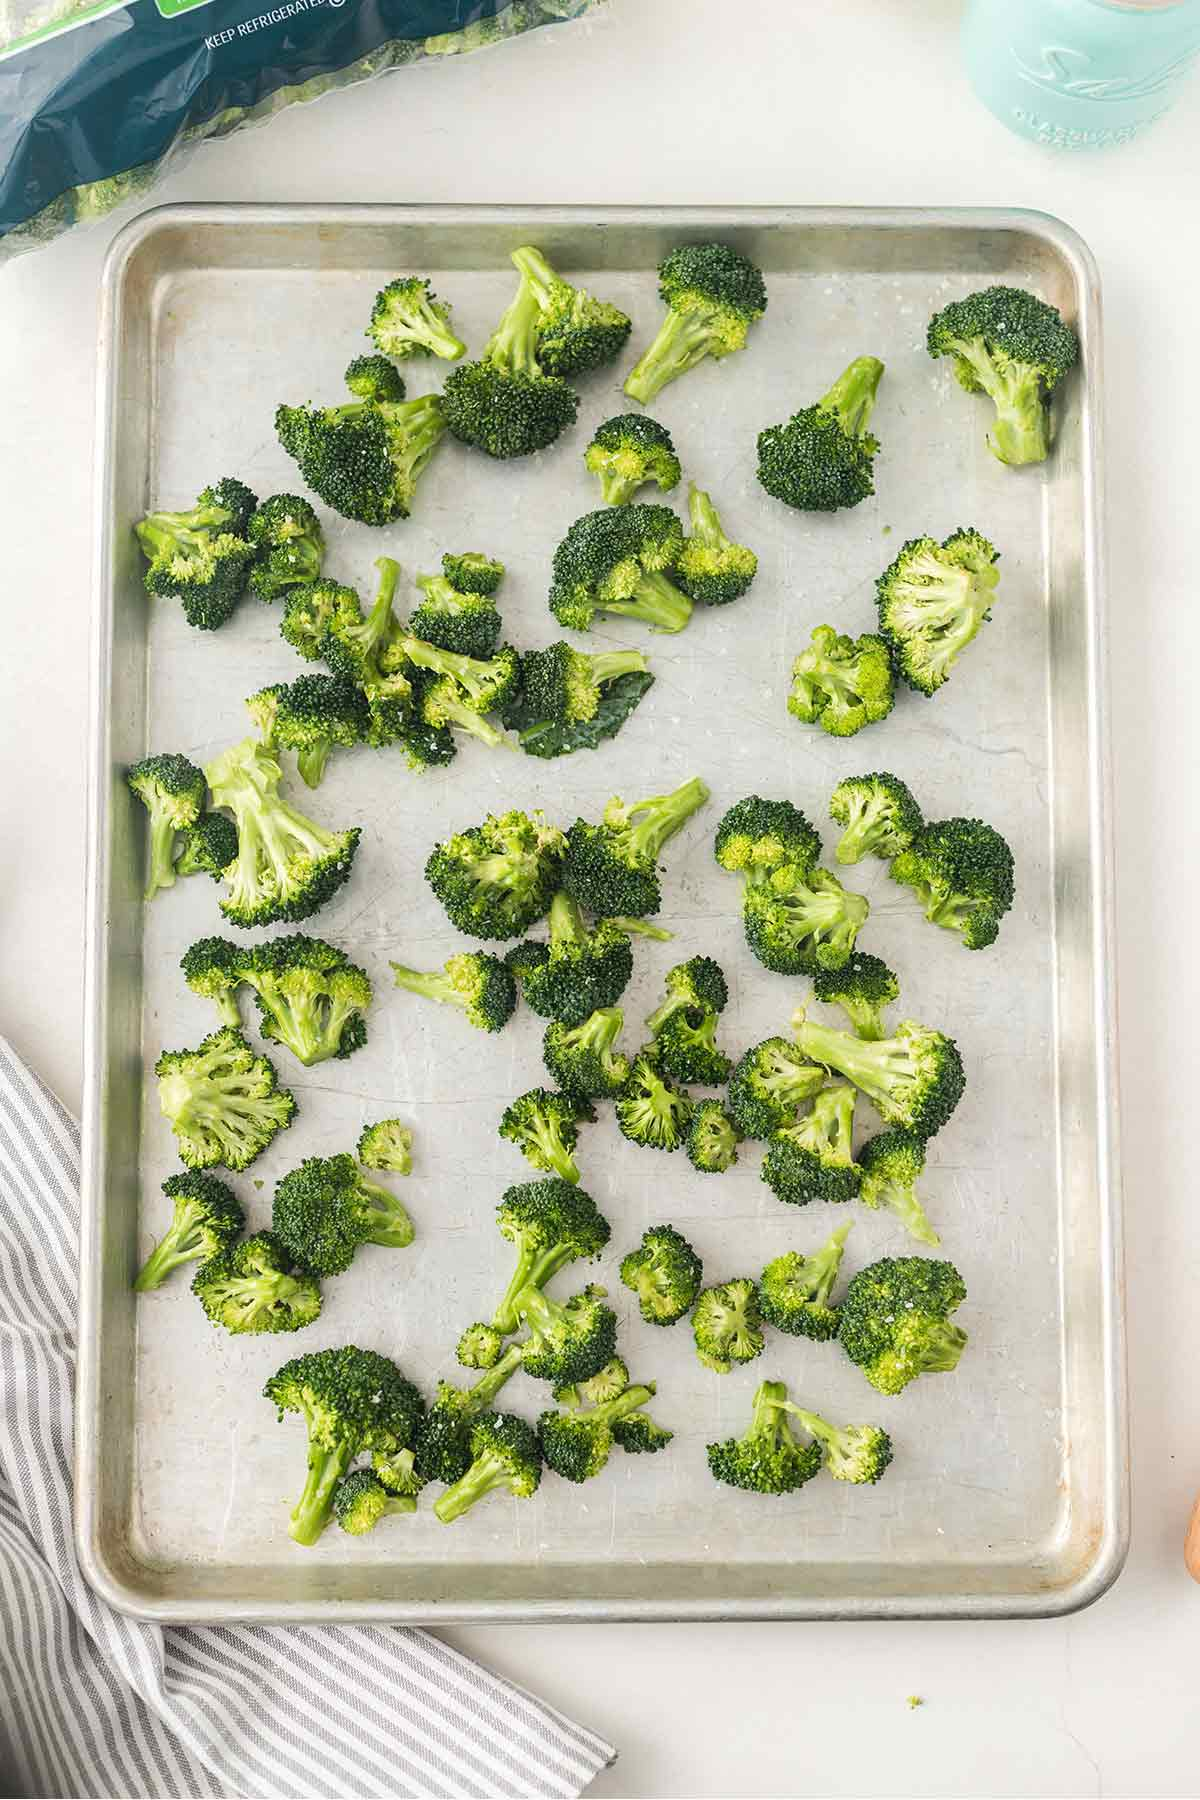 Overhead shot of broccoli florets on baking sheet ready to go into the oven for roasting.